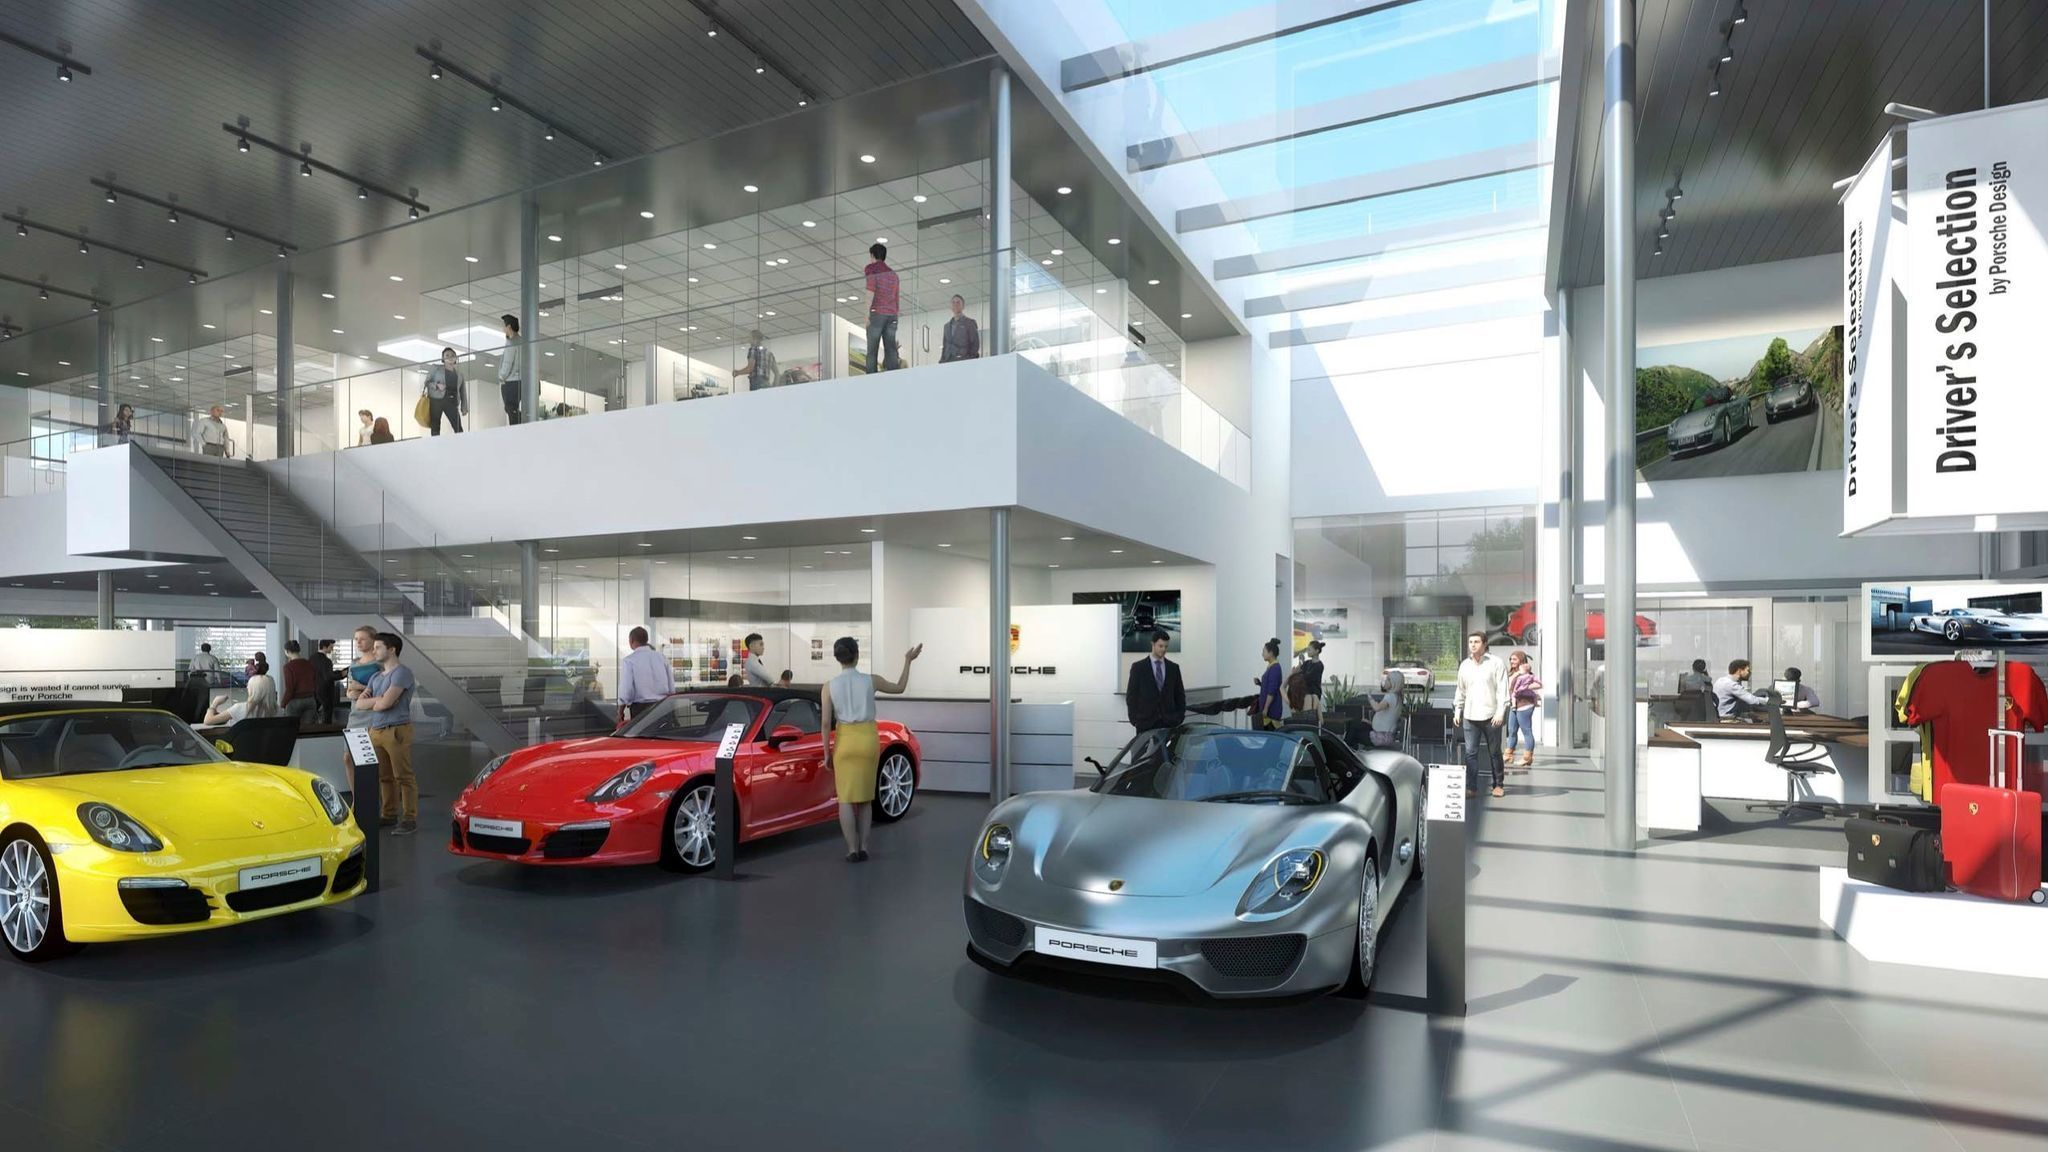 Car Dealerships In Orlando >> Millenia clinches luxury car hub with Ferrari, Porsche, Lexus - Orlando Sentinel